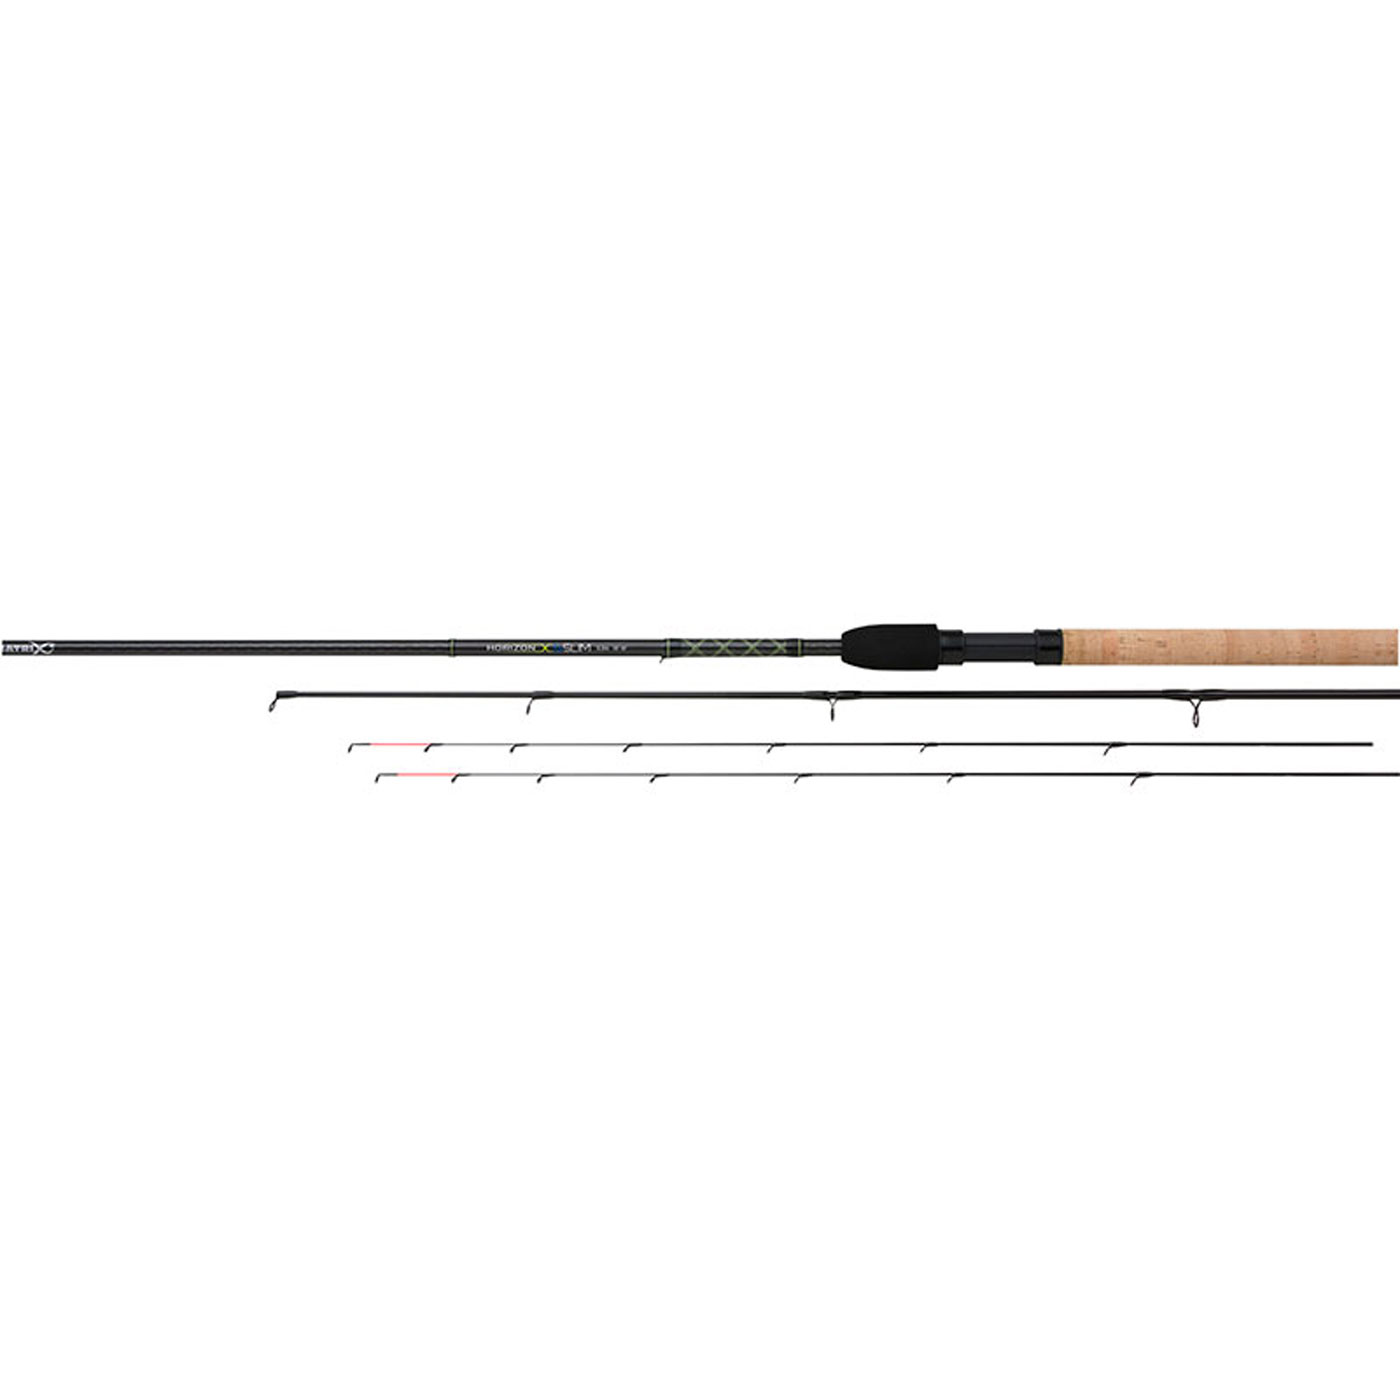 Matrix Horizon XS Slim 3.5m (11ft 6inch) Feeder Rod